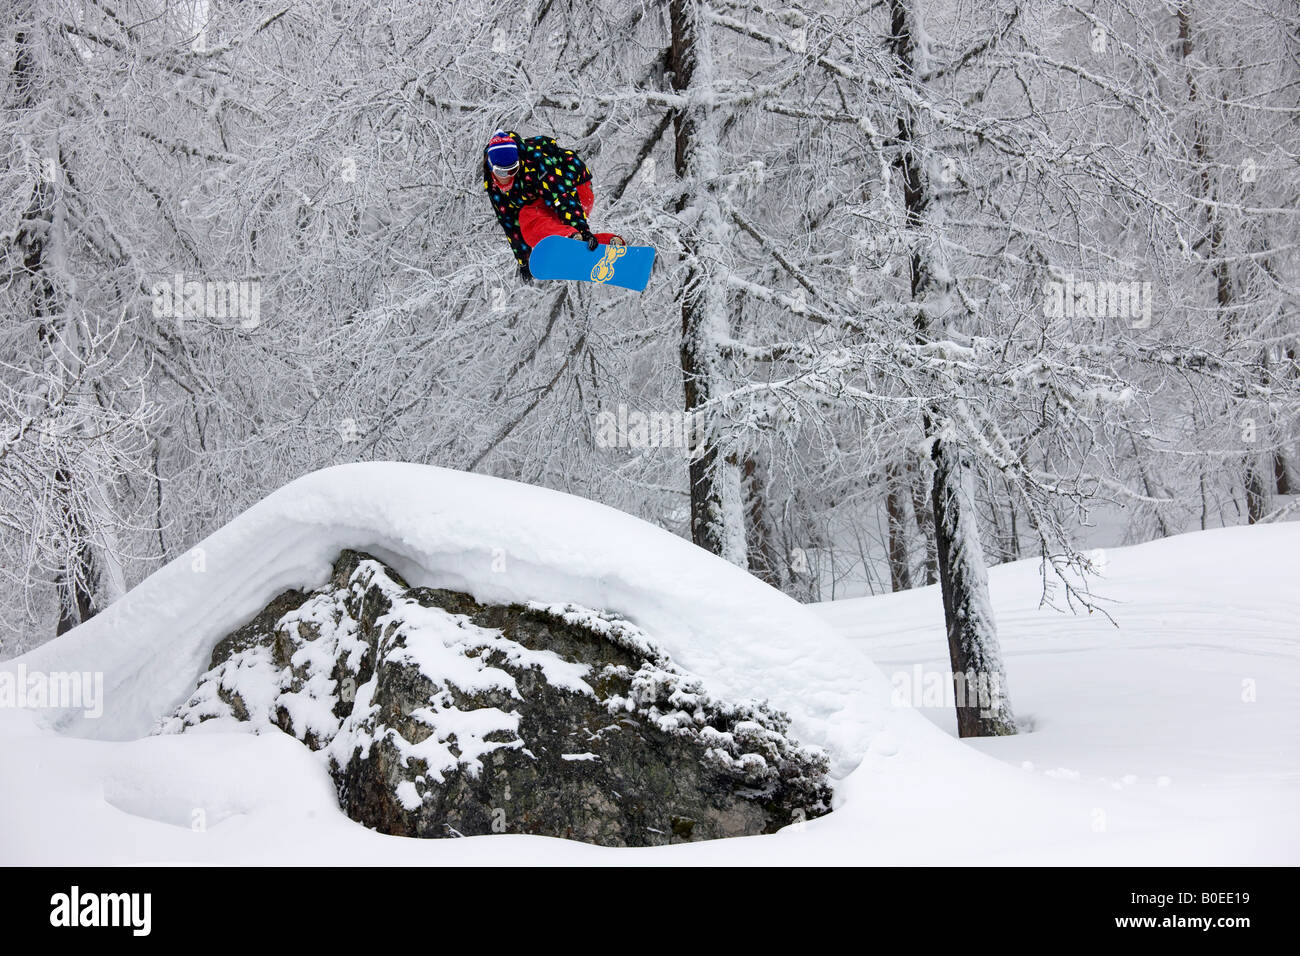 Snowboarder jumps from a rock off piste. - Stock Image